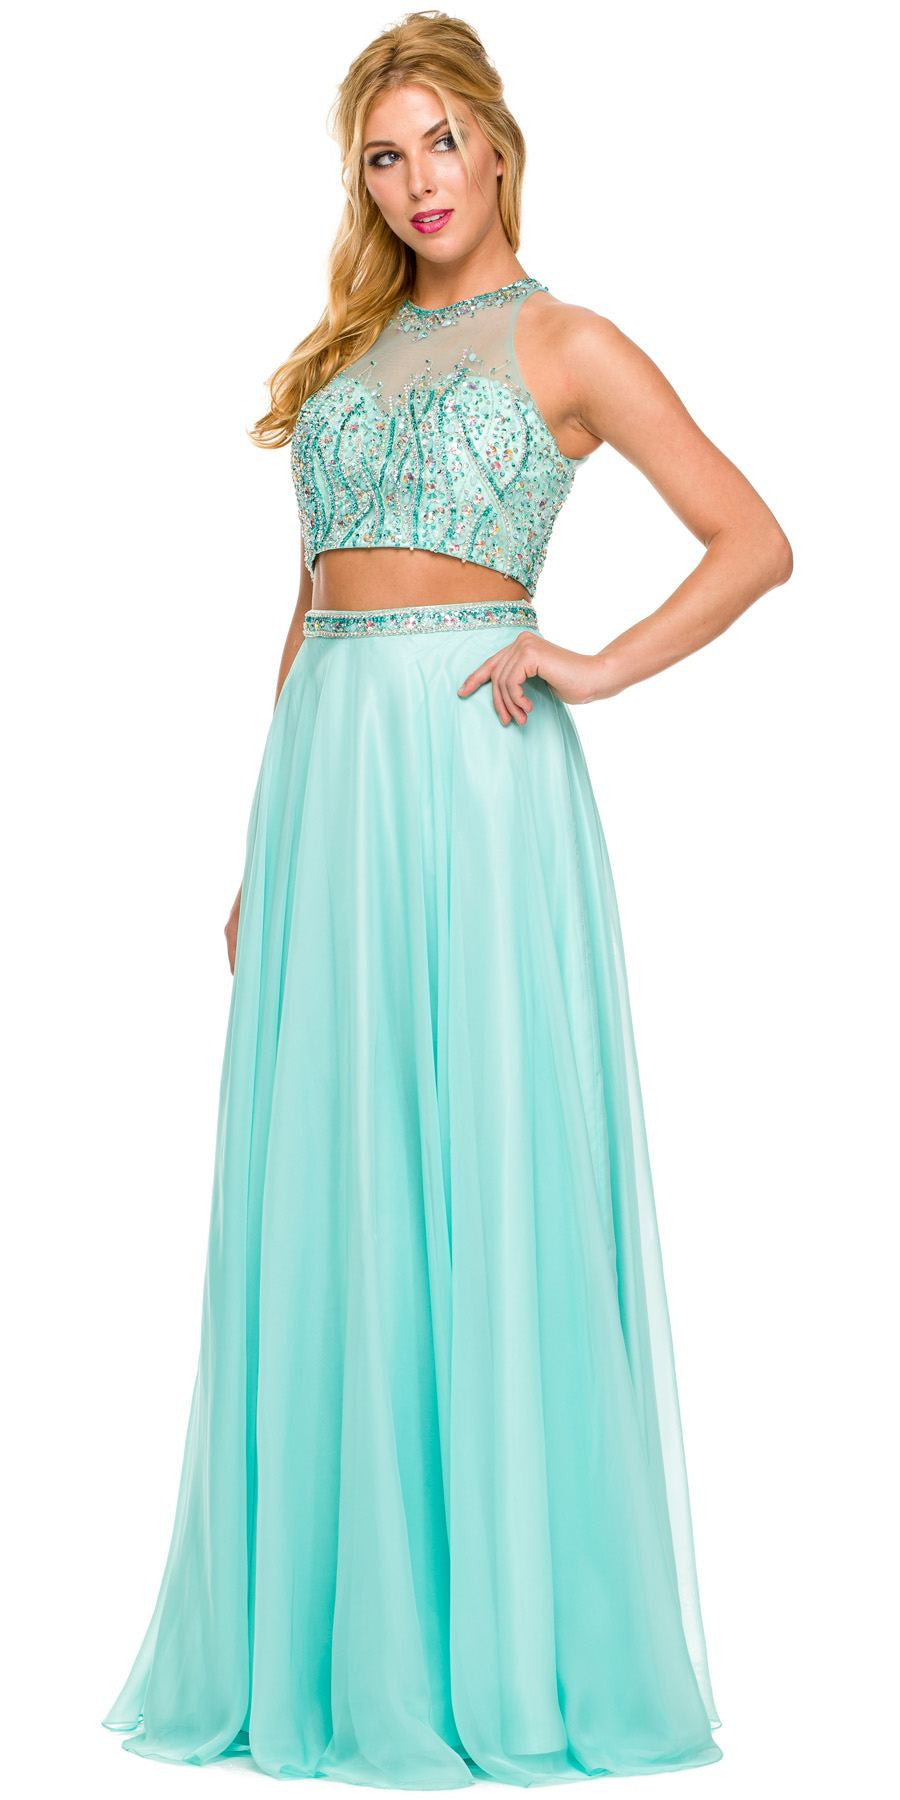 ddad423a85 Long 2 Piece Gown Jade High Neck Rhinestone Top Keyhole Back. Tap to expand